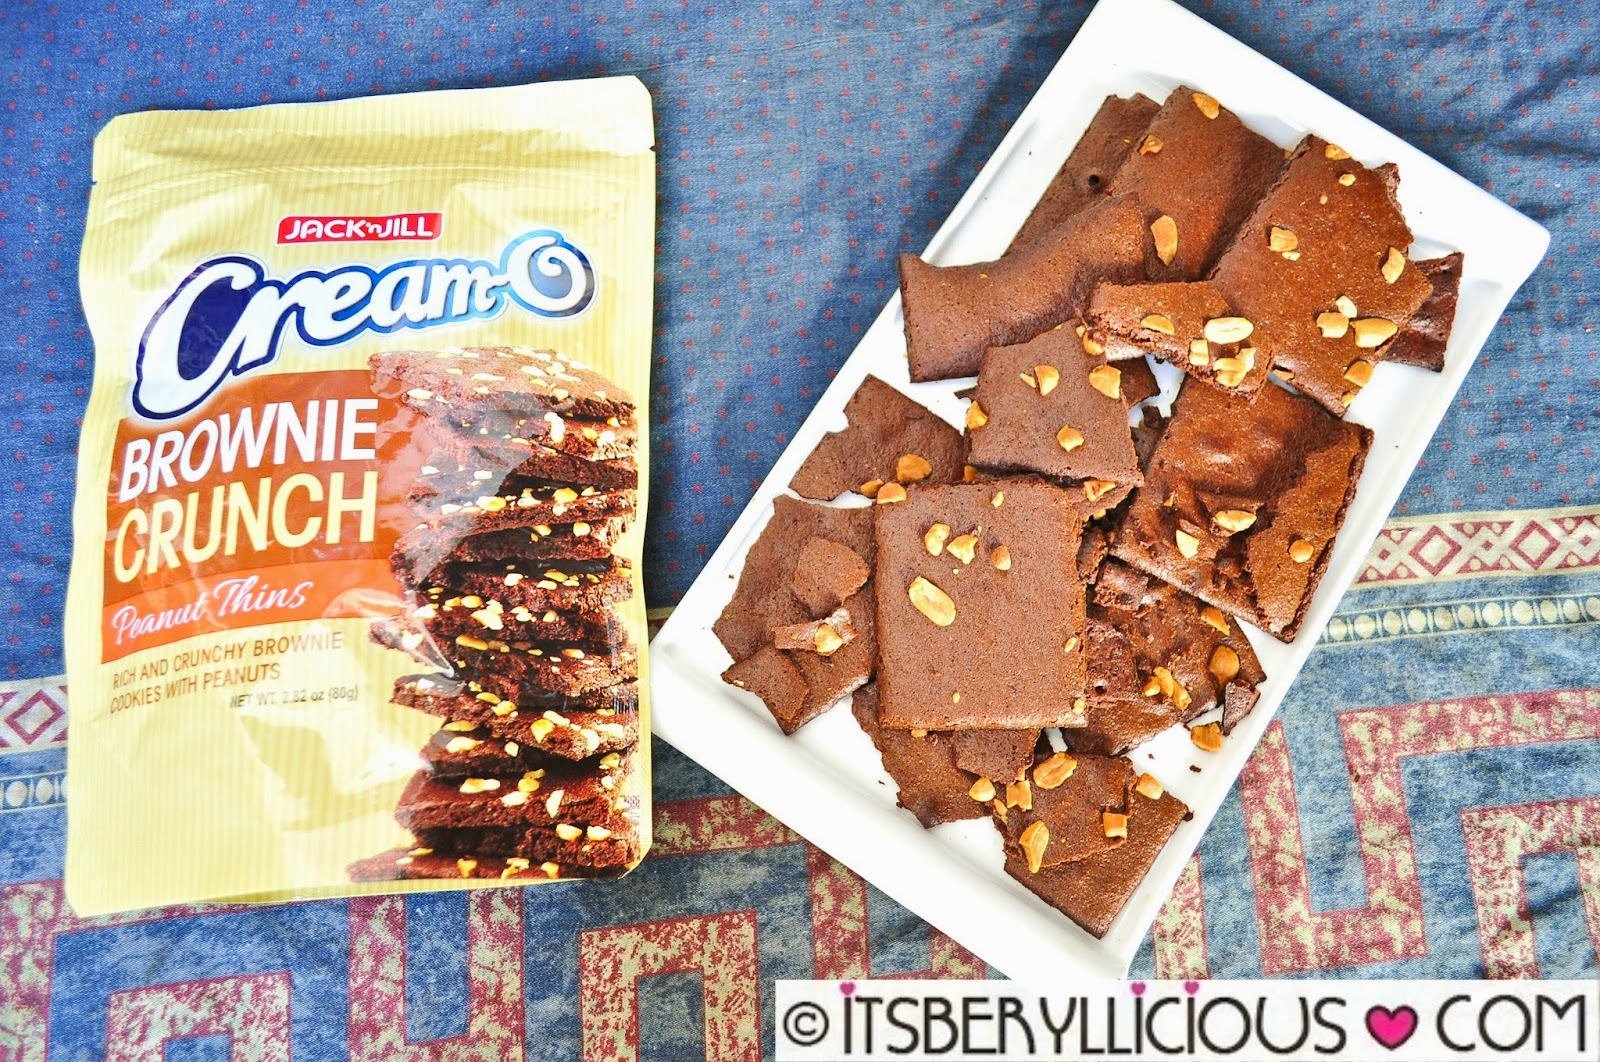 snack pack brownie thins double chocolate gluten free brownie thins ...